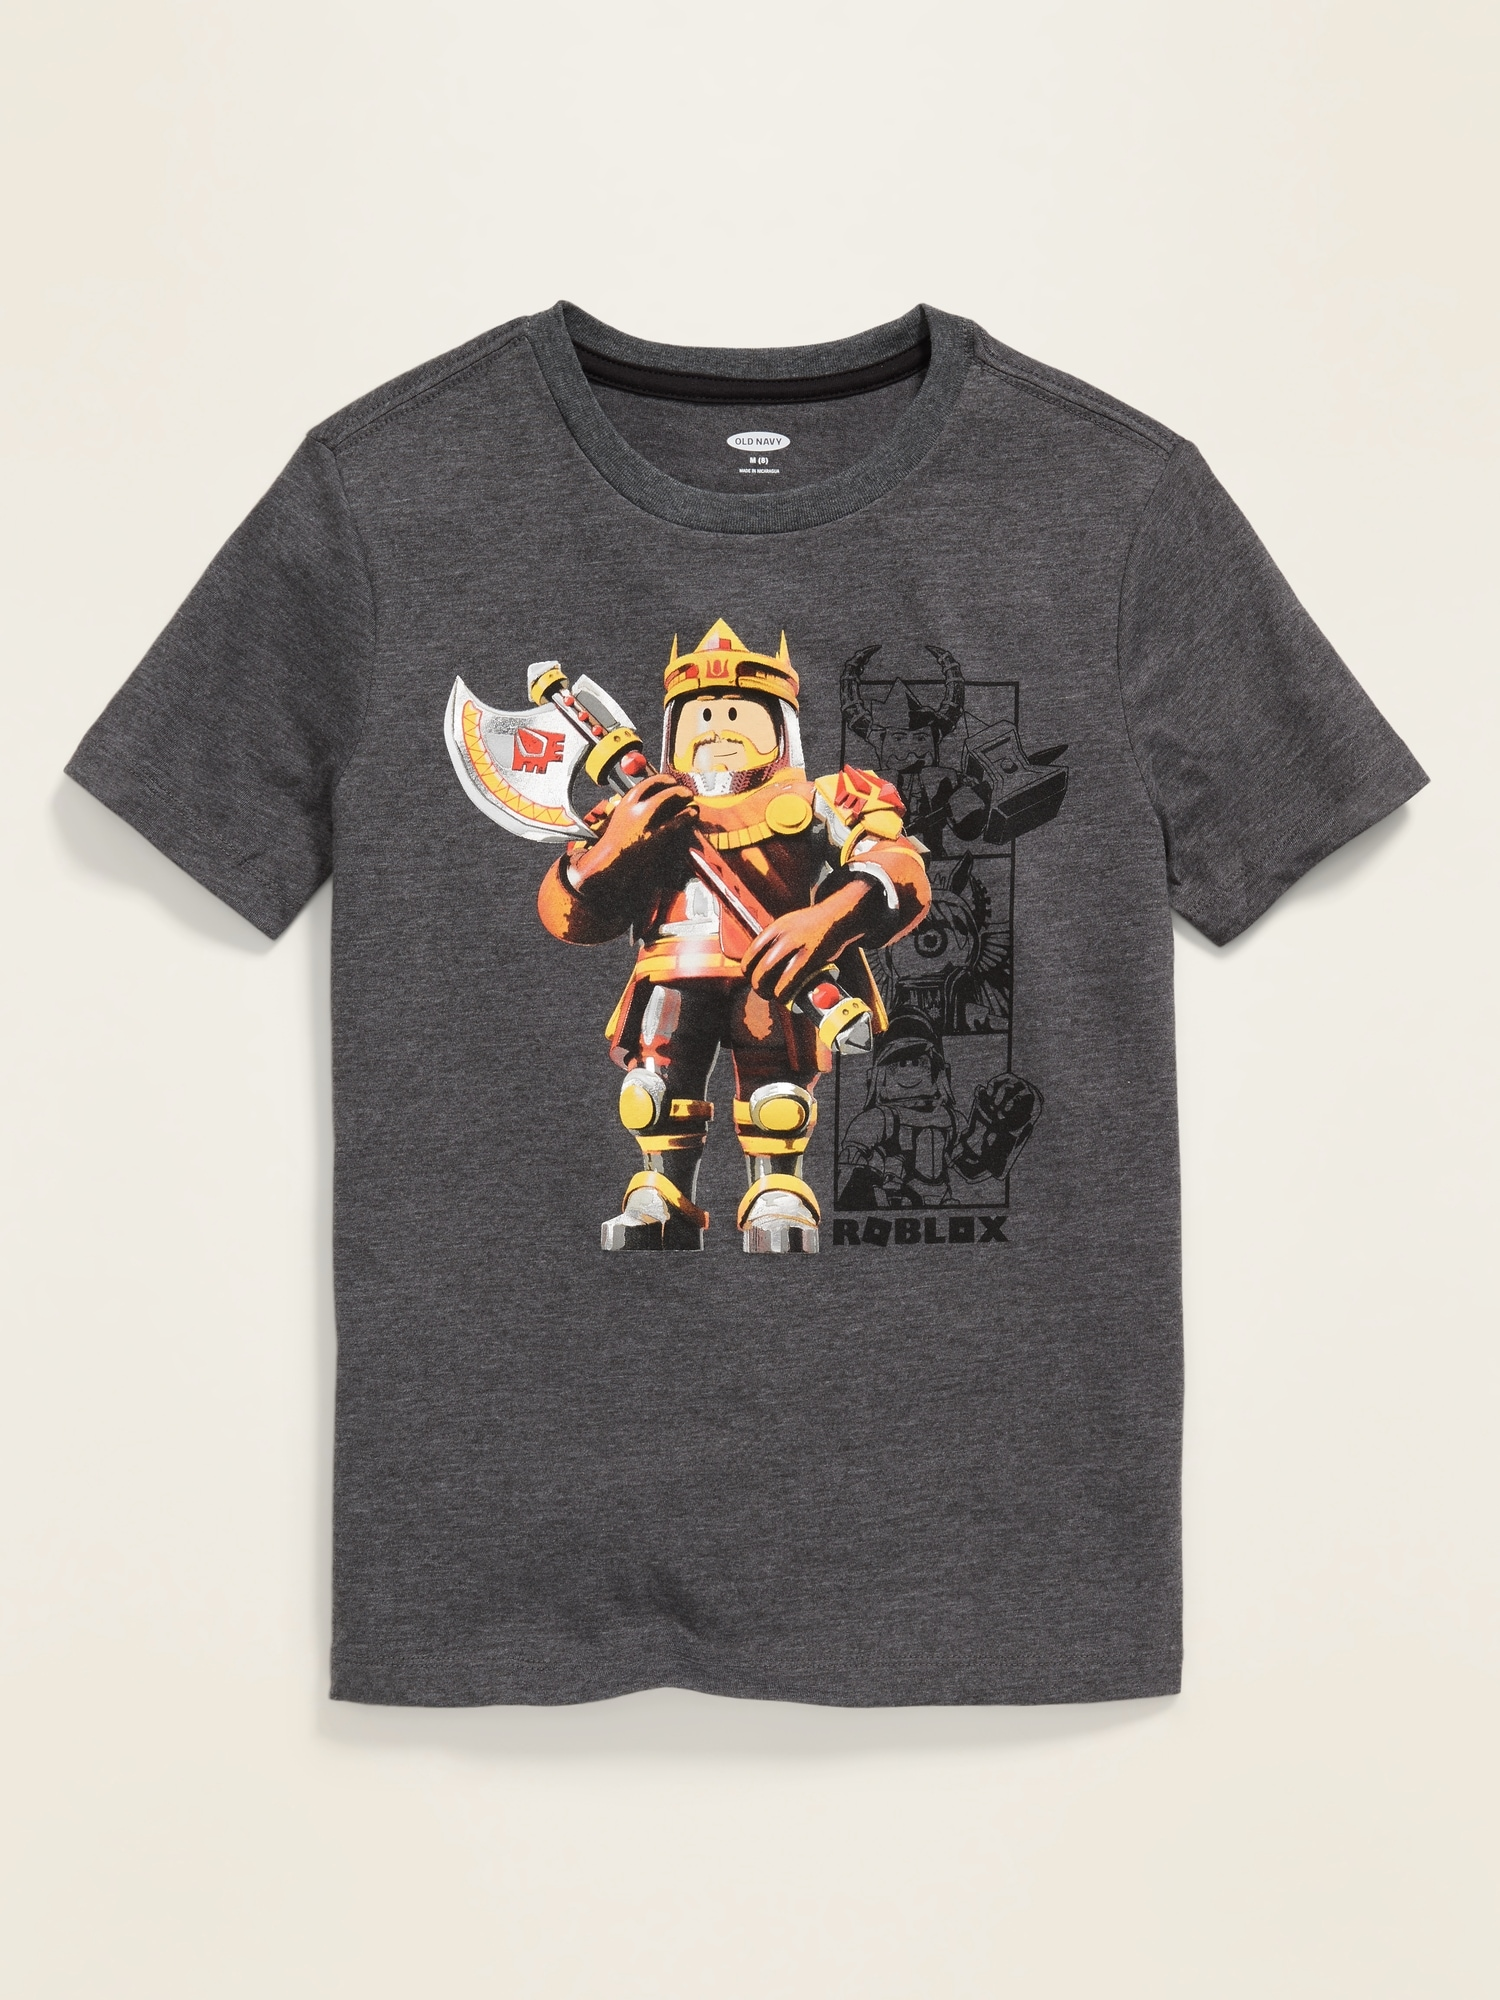 Roblox 153 Graphic Tee For Boys Old Navy